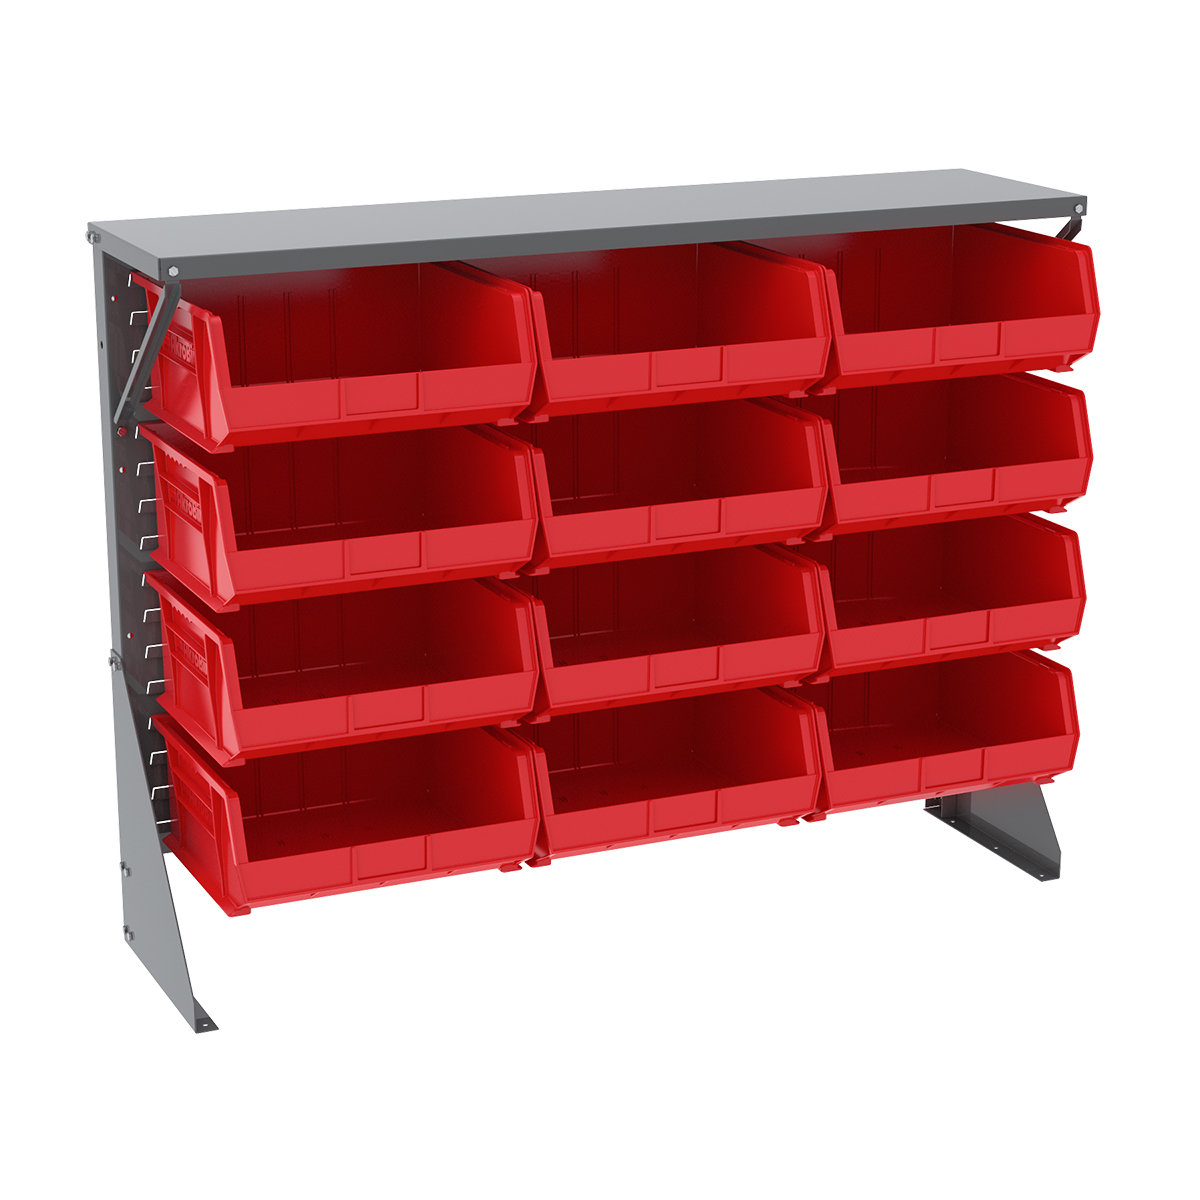 Item DISCONTINUED by Manufacturer.  Low Profile Floor Rack, 1-Sided, Shelf w/ 12 AkroBins, Gray/Red (30650GY250R).  This item sold in carton quantities of 1.